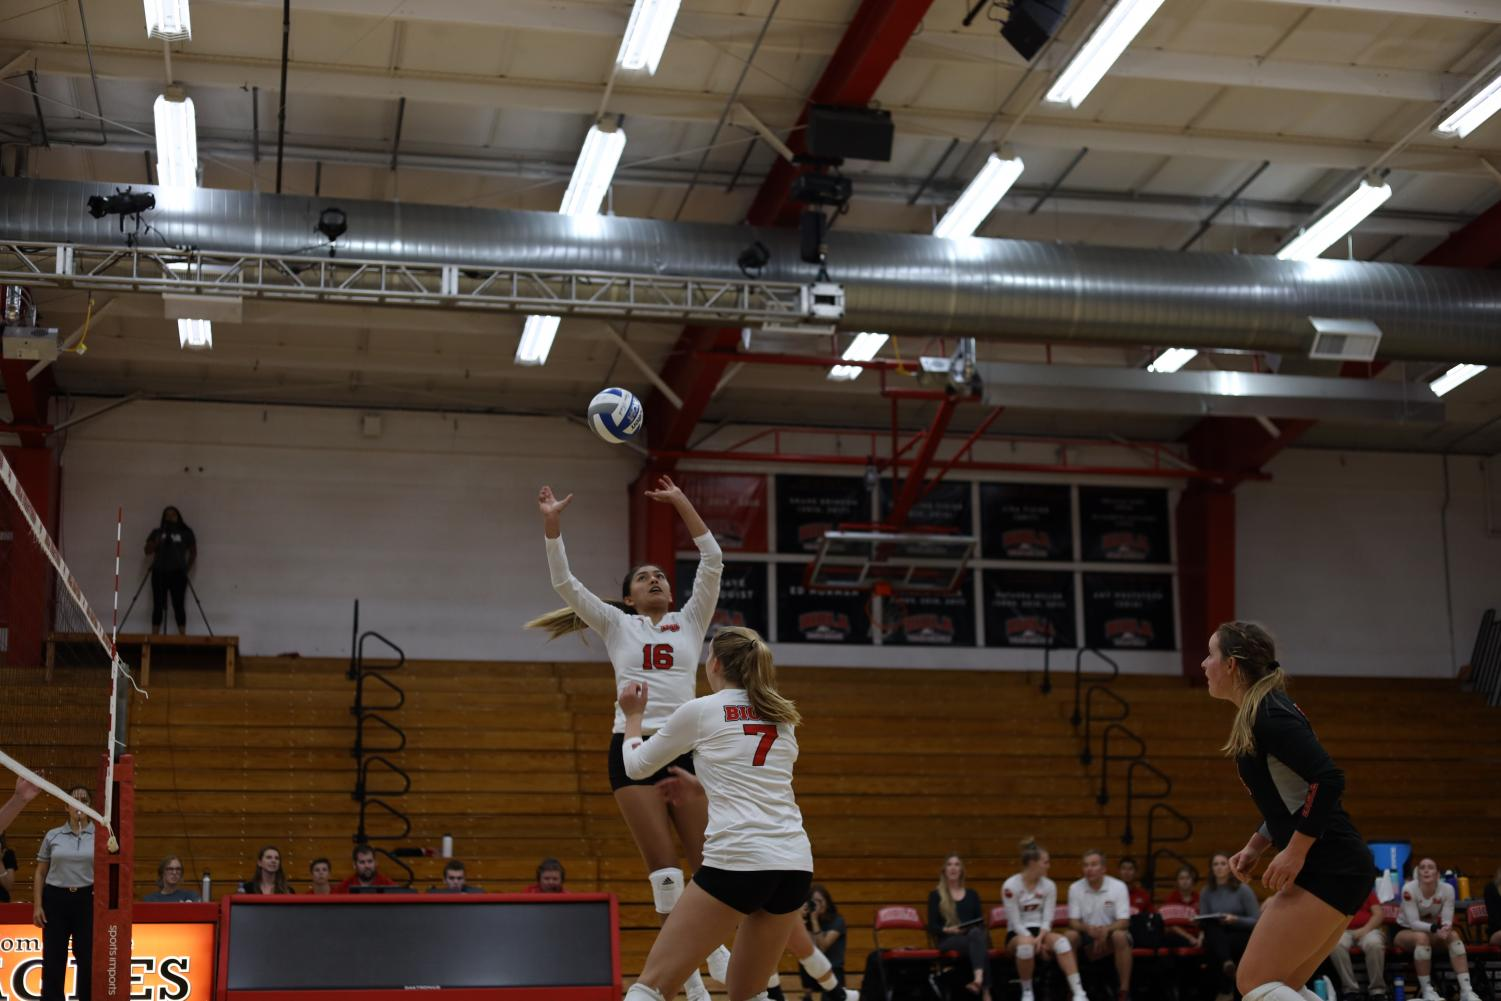 Junior Vanessa Garcia jumps towards the ball in order to pass towards her teammate.